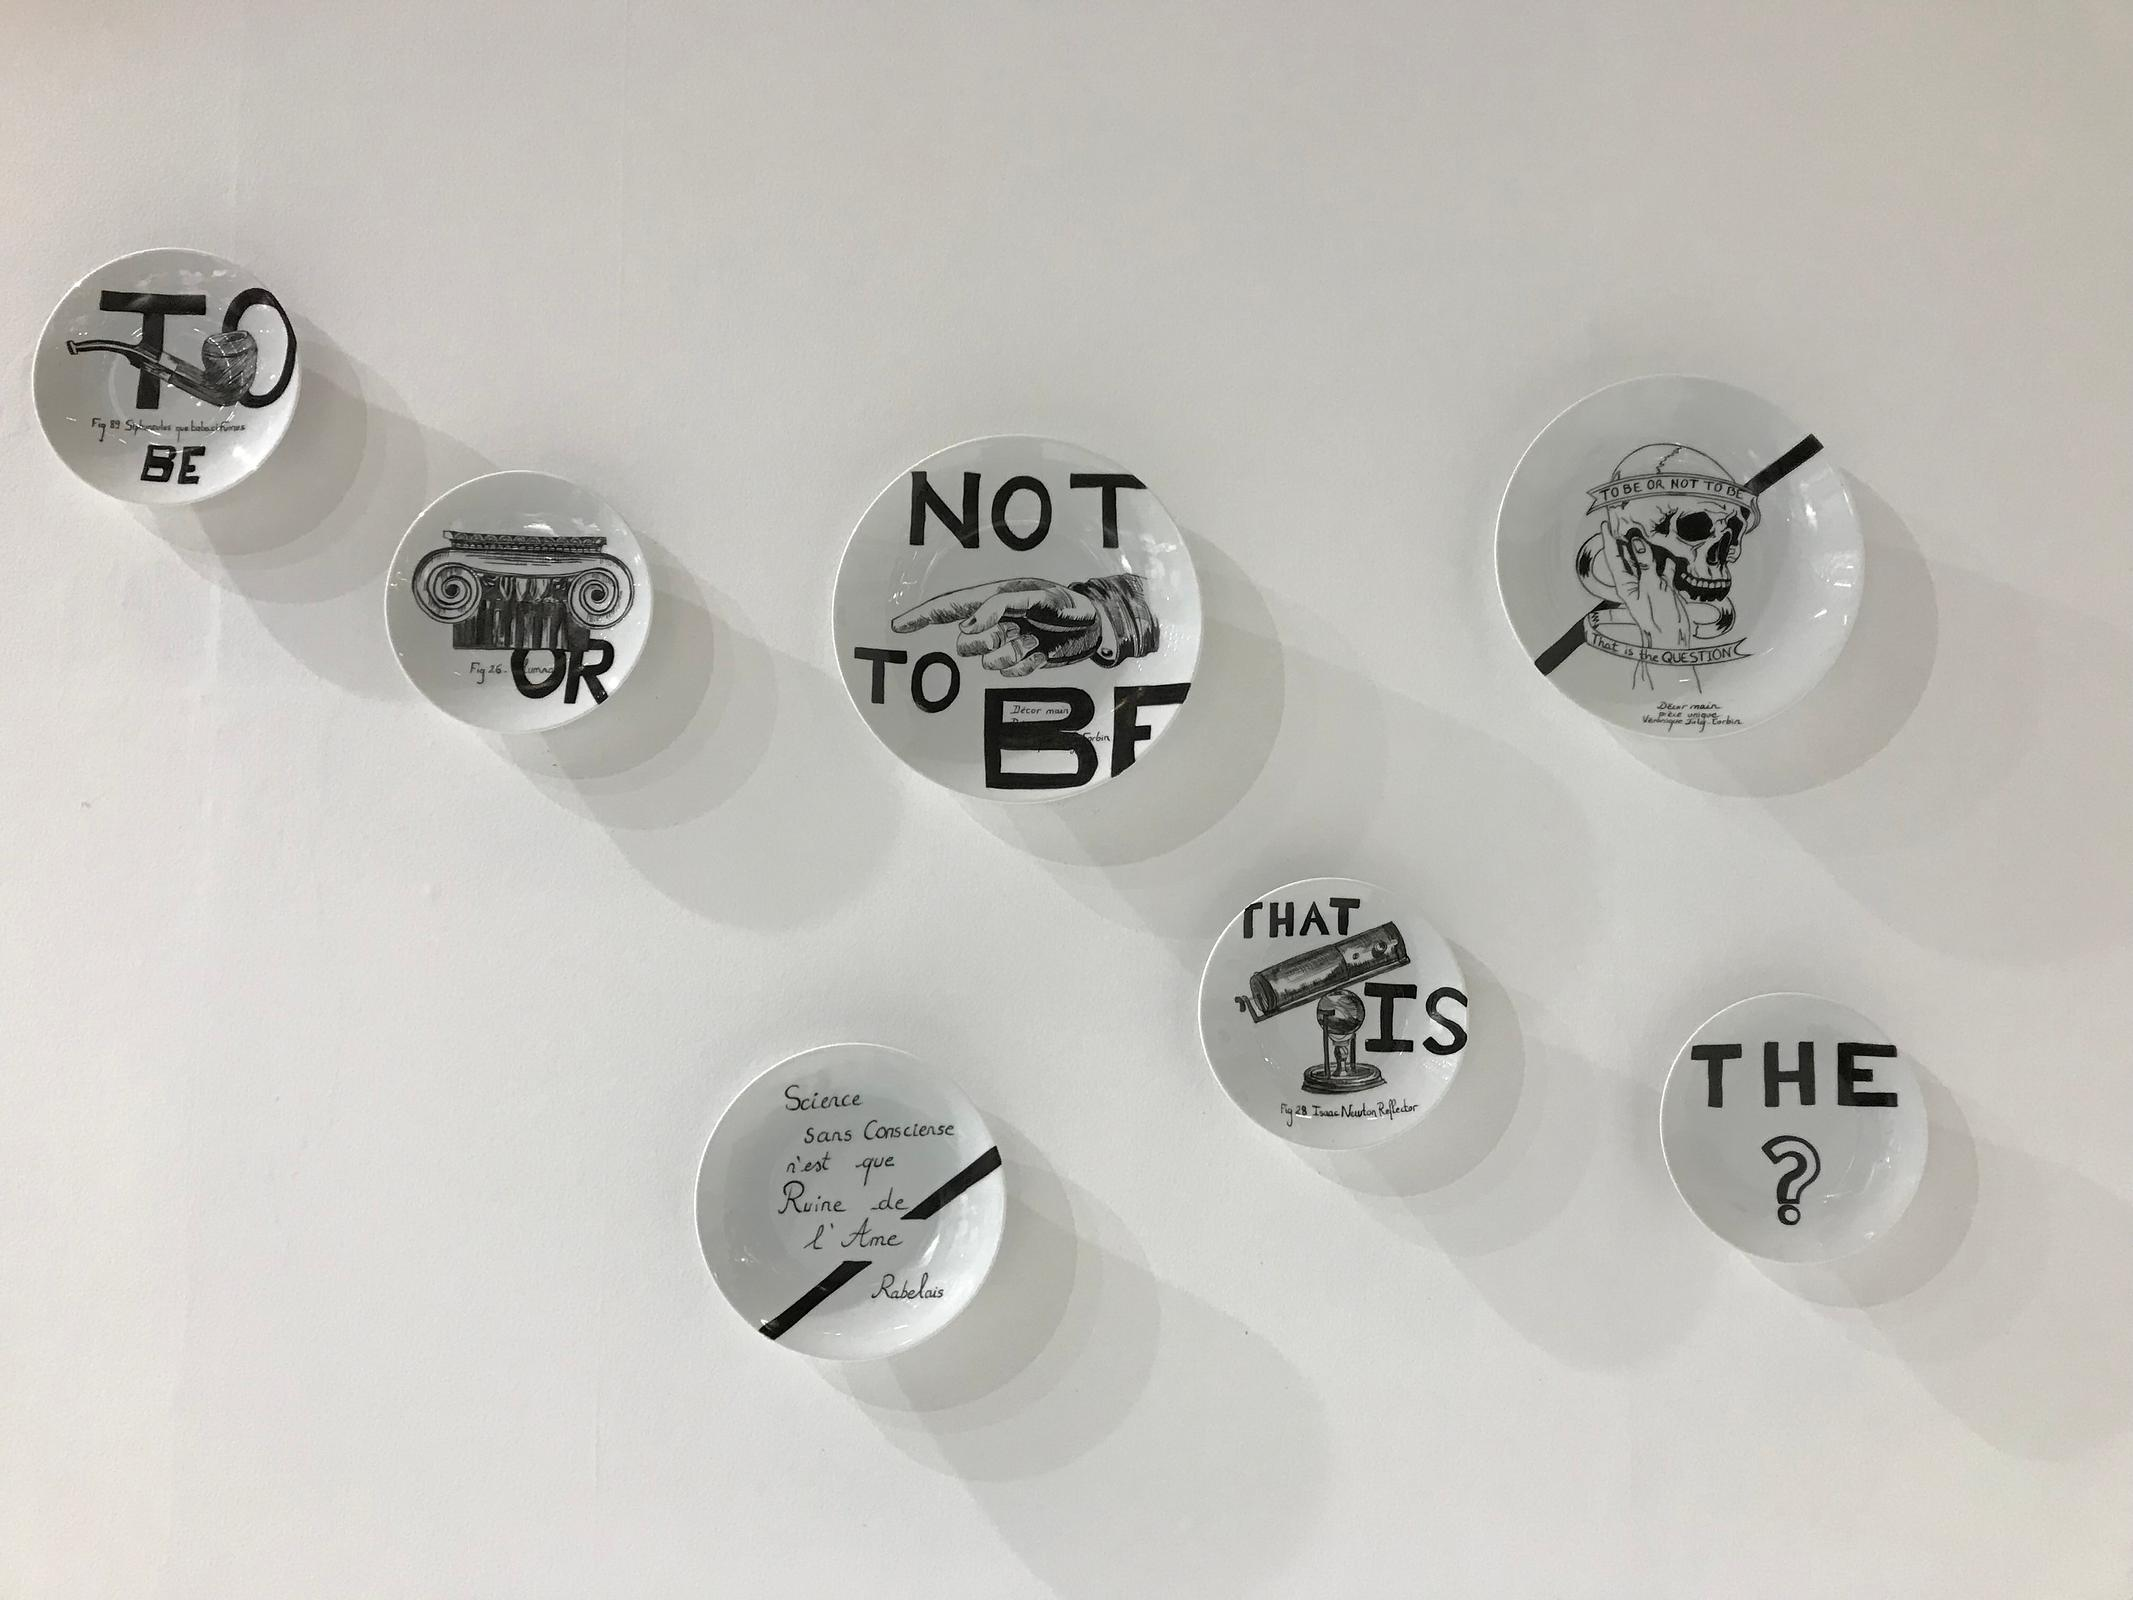 Installation murale heptagone TO BE OR NOT TO BE Véronique Joly-Corbin